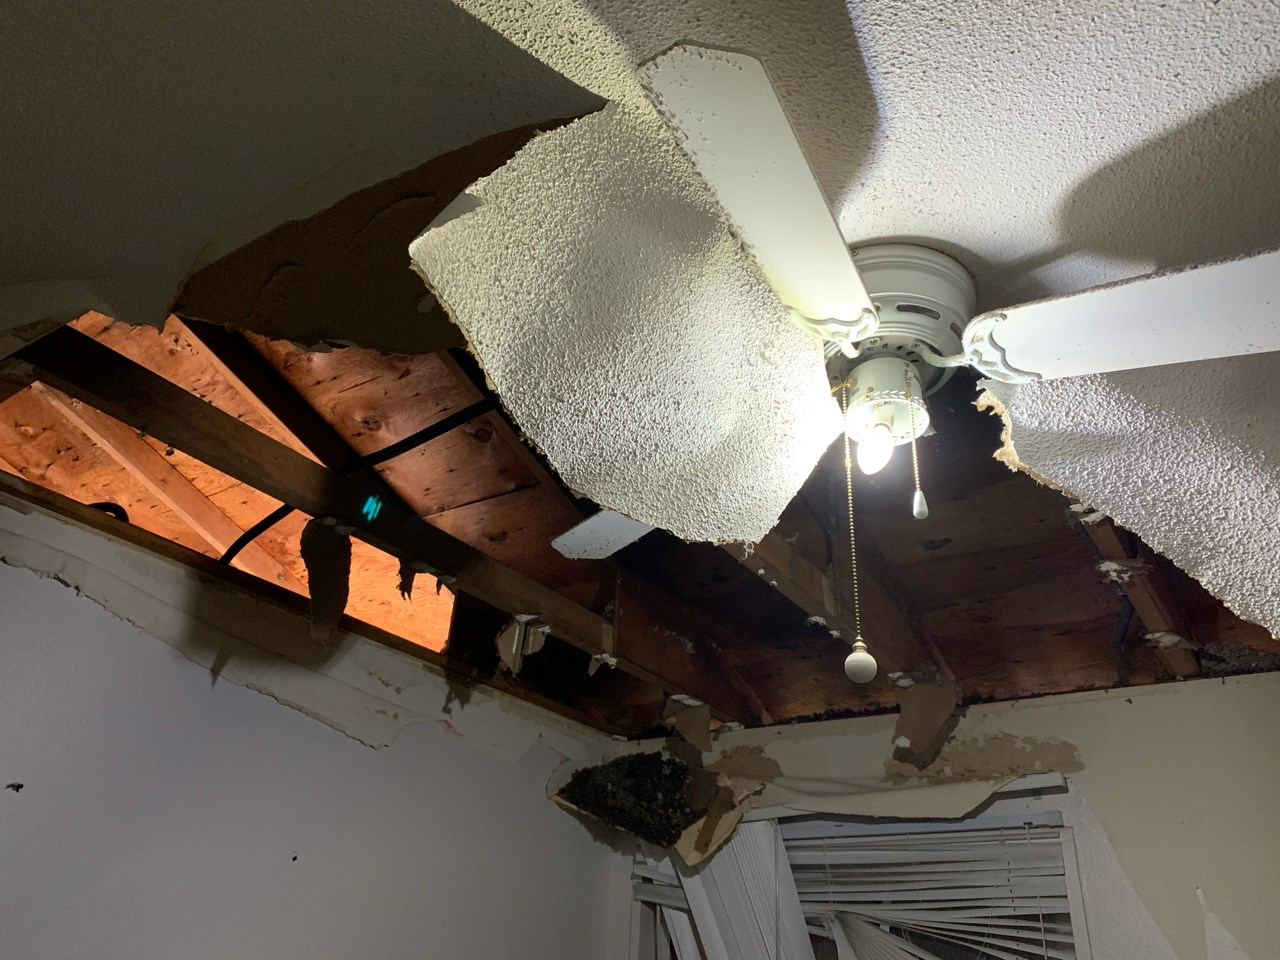 Partially collapsed townhouse ceiling and ceiling fan